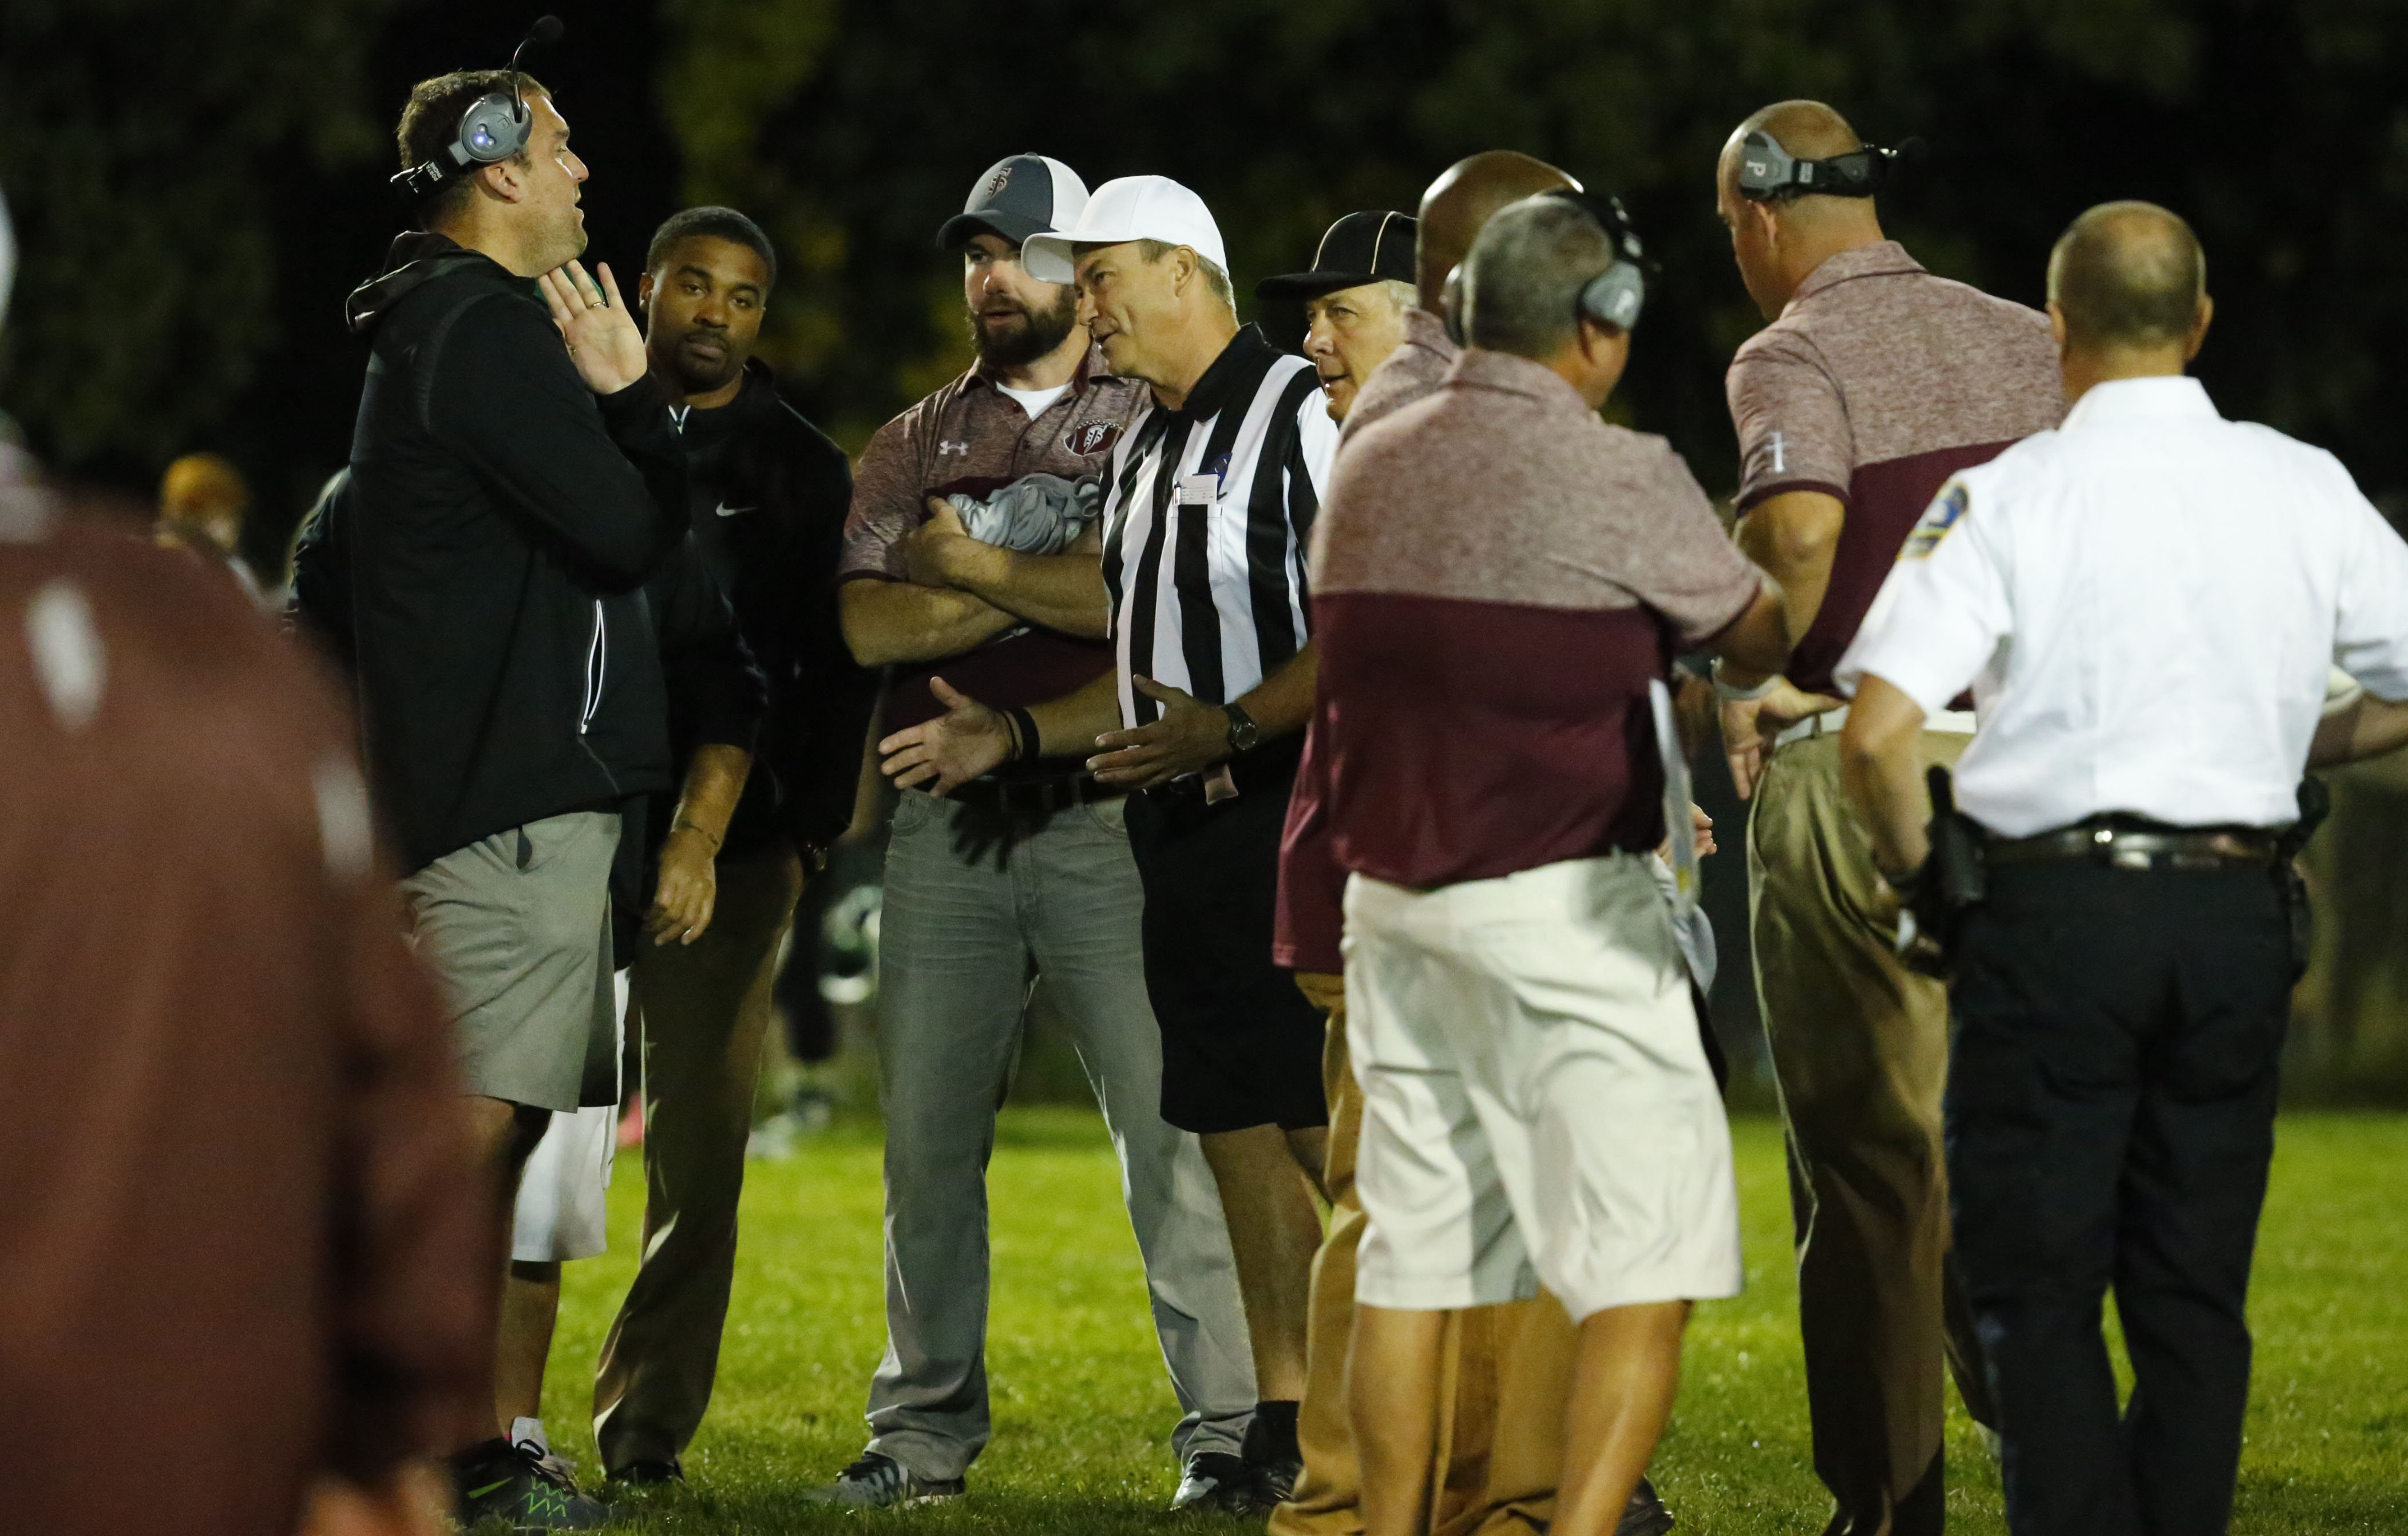 St. Joe's coach Derek Landri and Timon coach Charlie Comerford talk with officials while police look on after last Friday night's bench-clearing brawl. (Harry Scull Jr./Buffalo News)